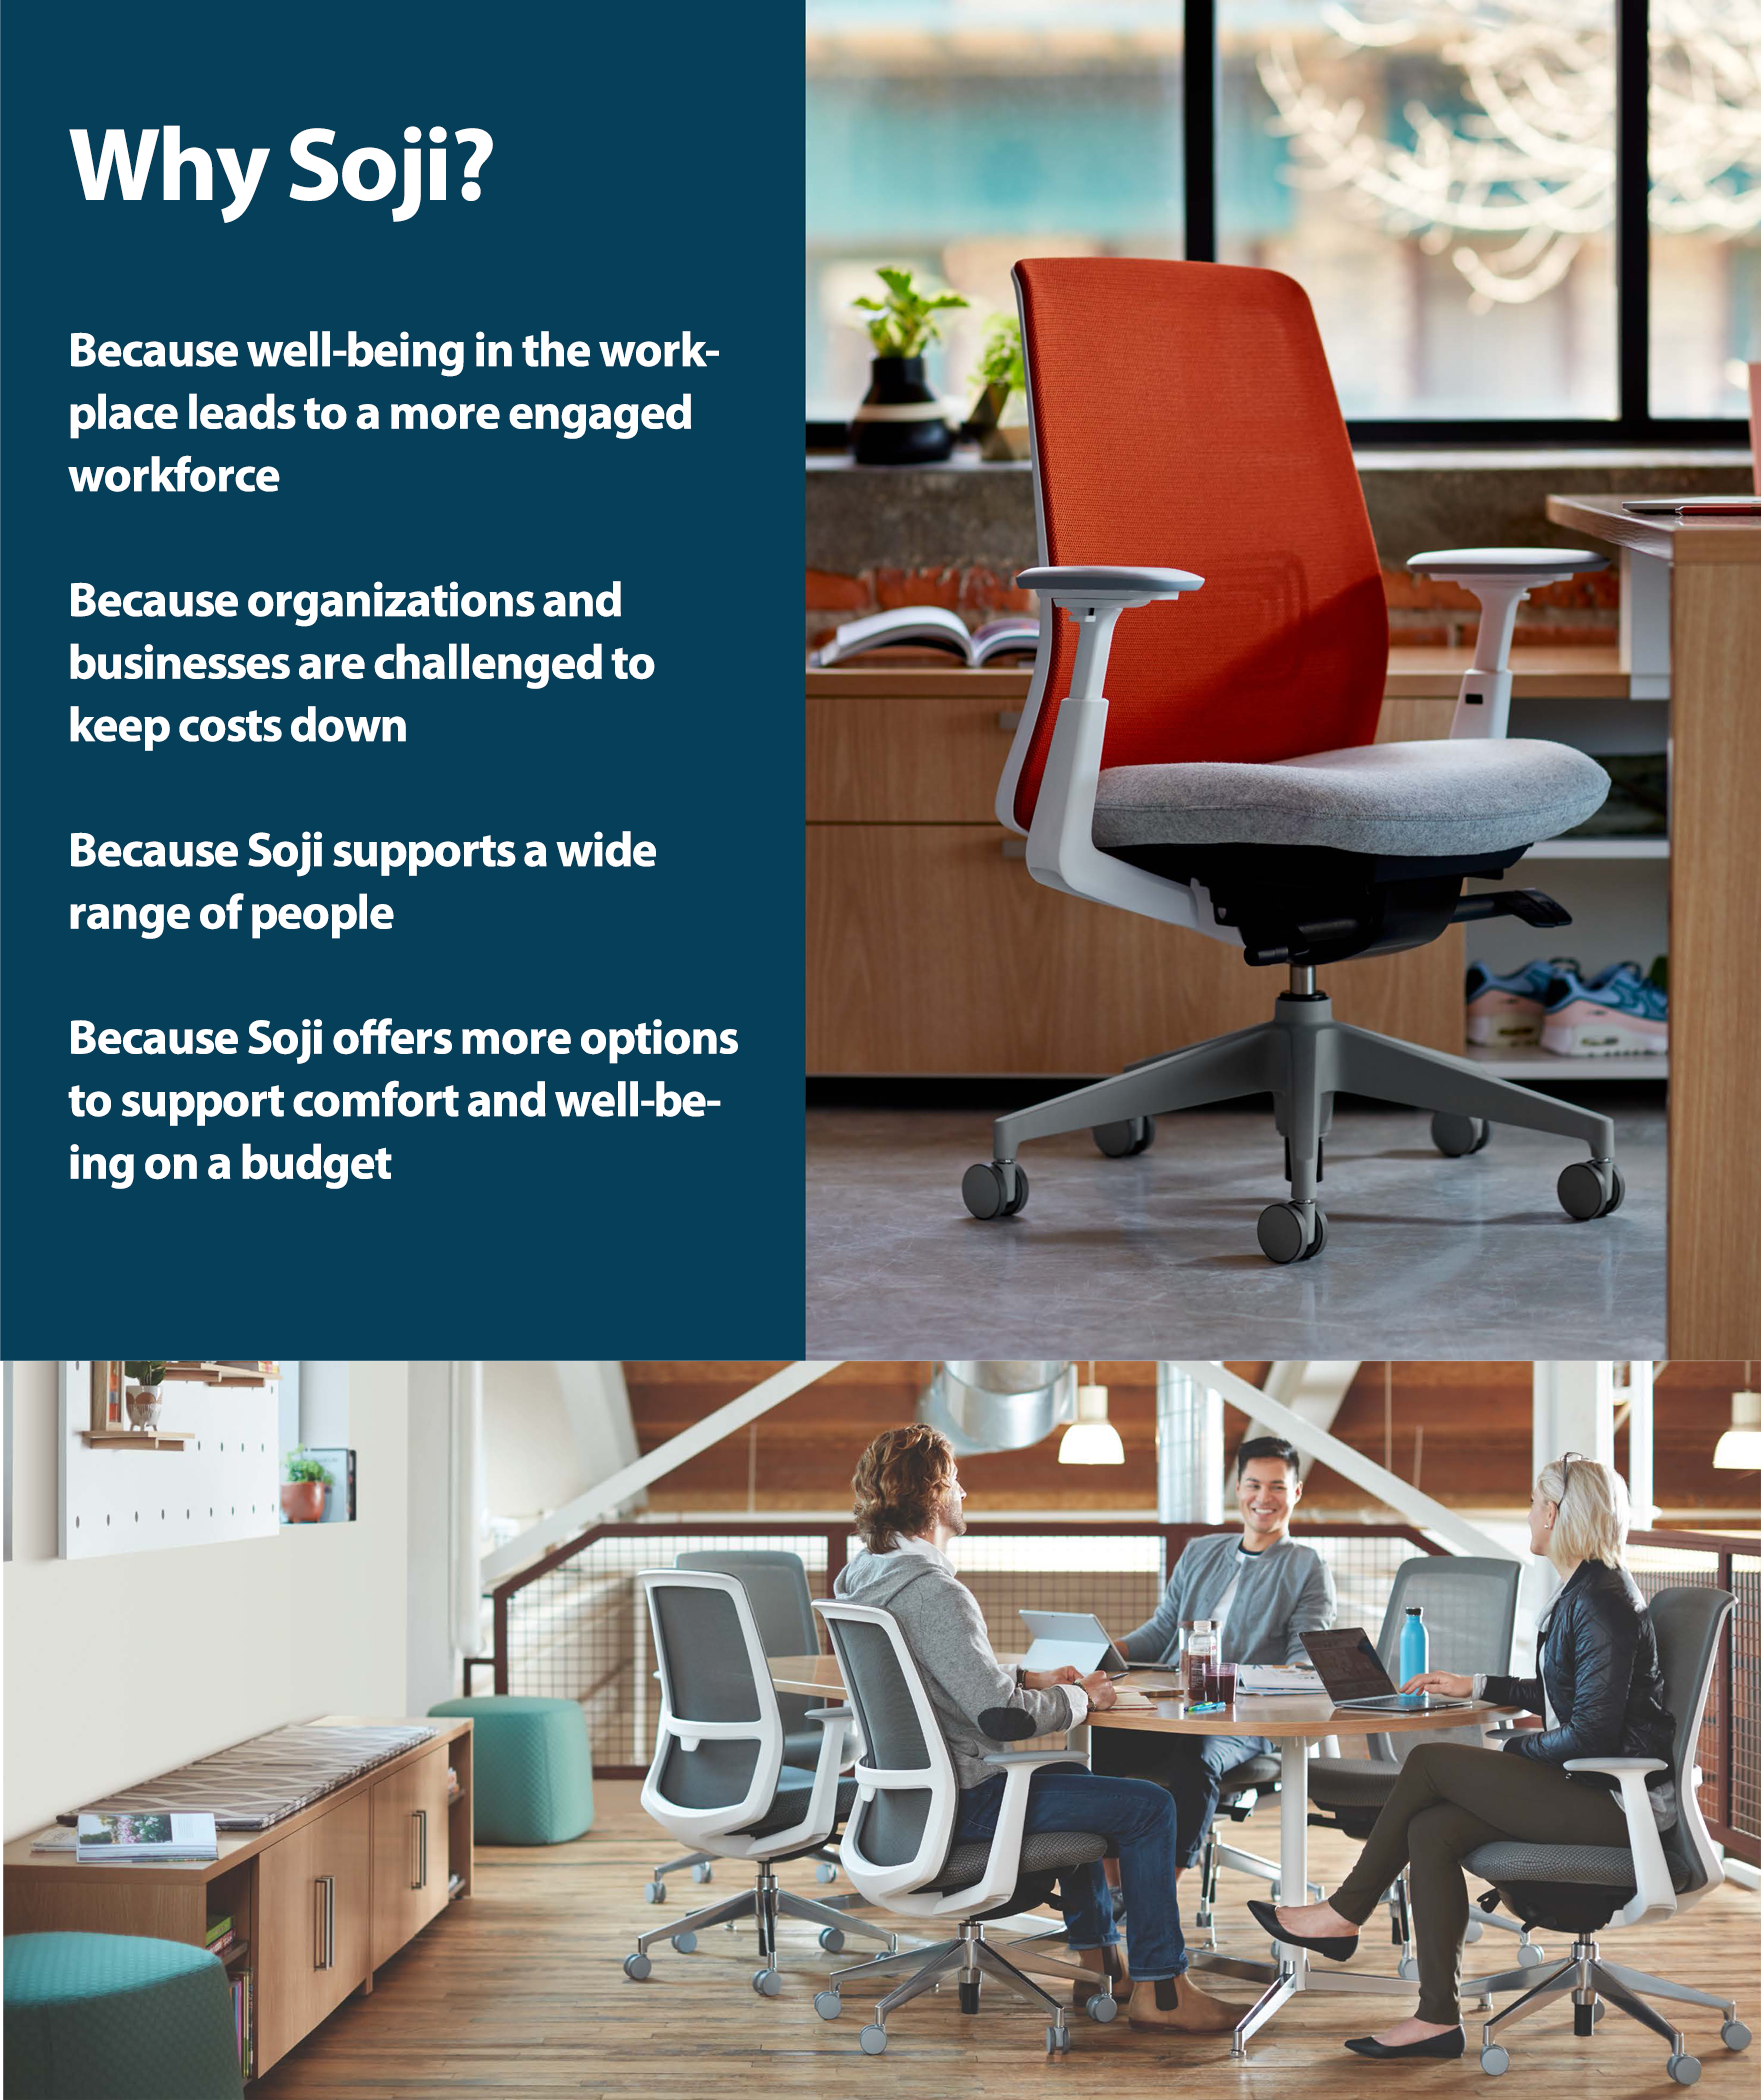 Superieur Haworth Task Seating Is A Portfolio Of High Performance Chairs That Support  The Well Being Of Every Working Individual. Soji Is The Newest Member Of  The ...